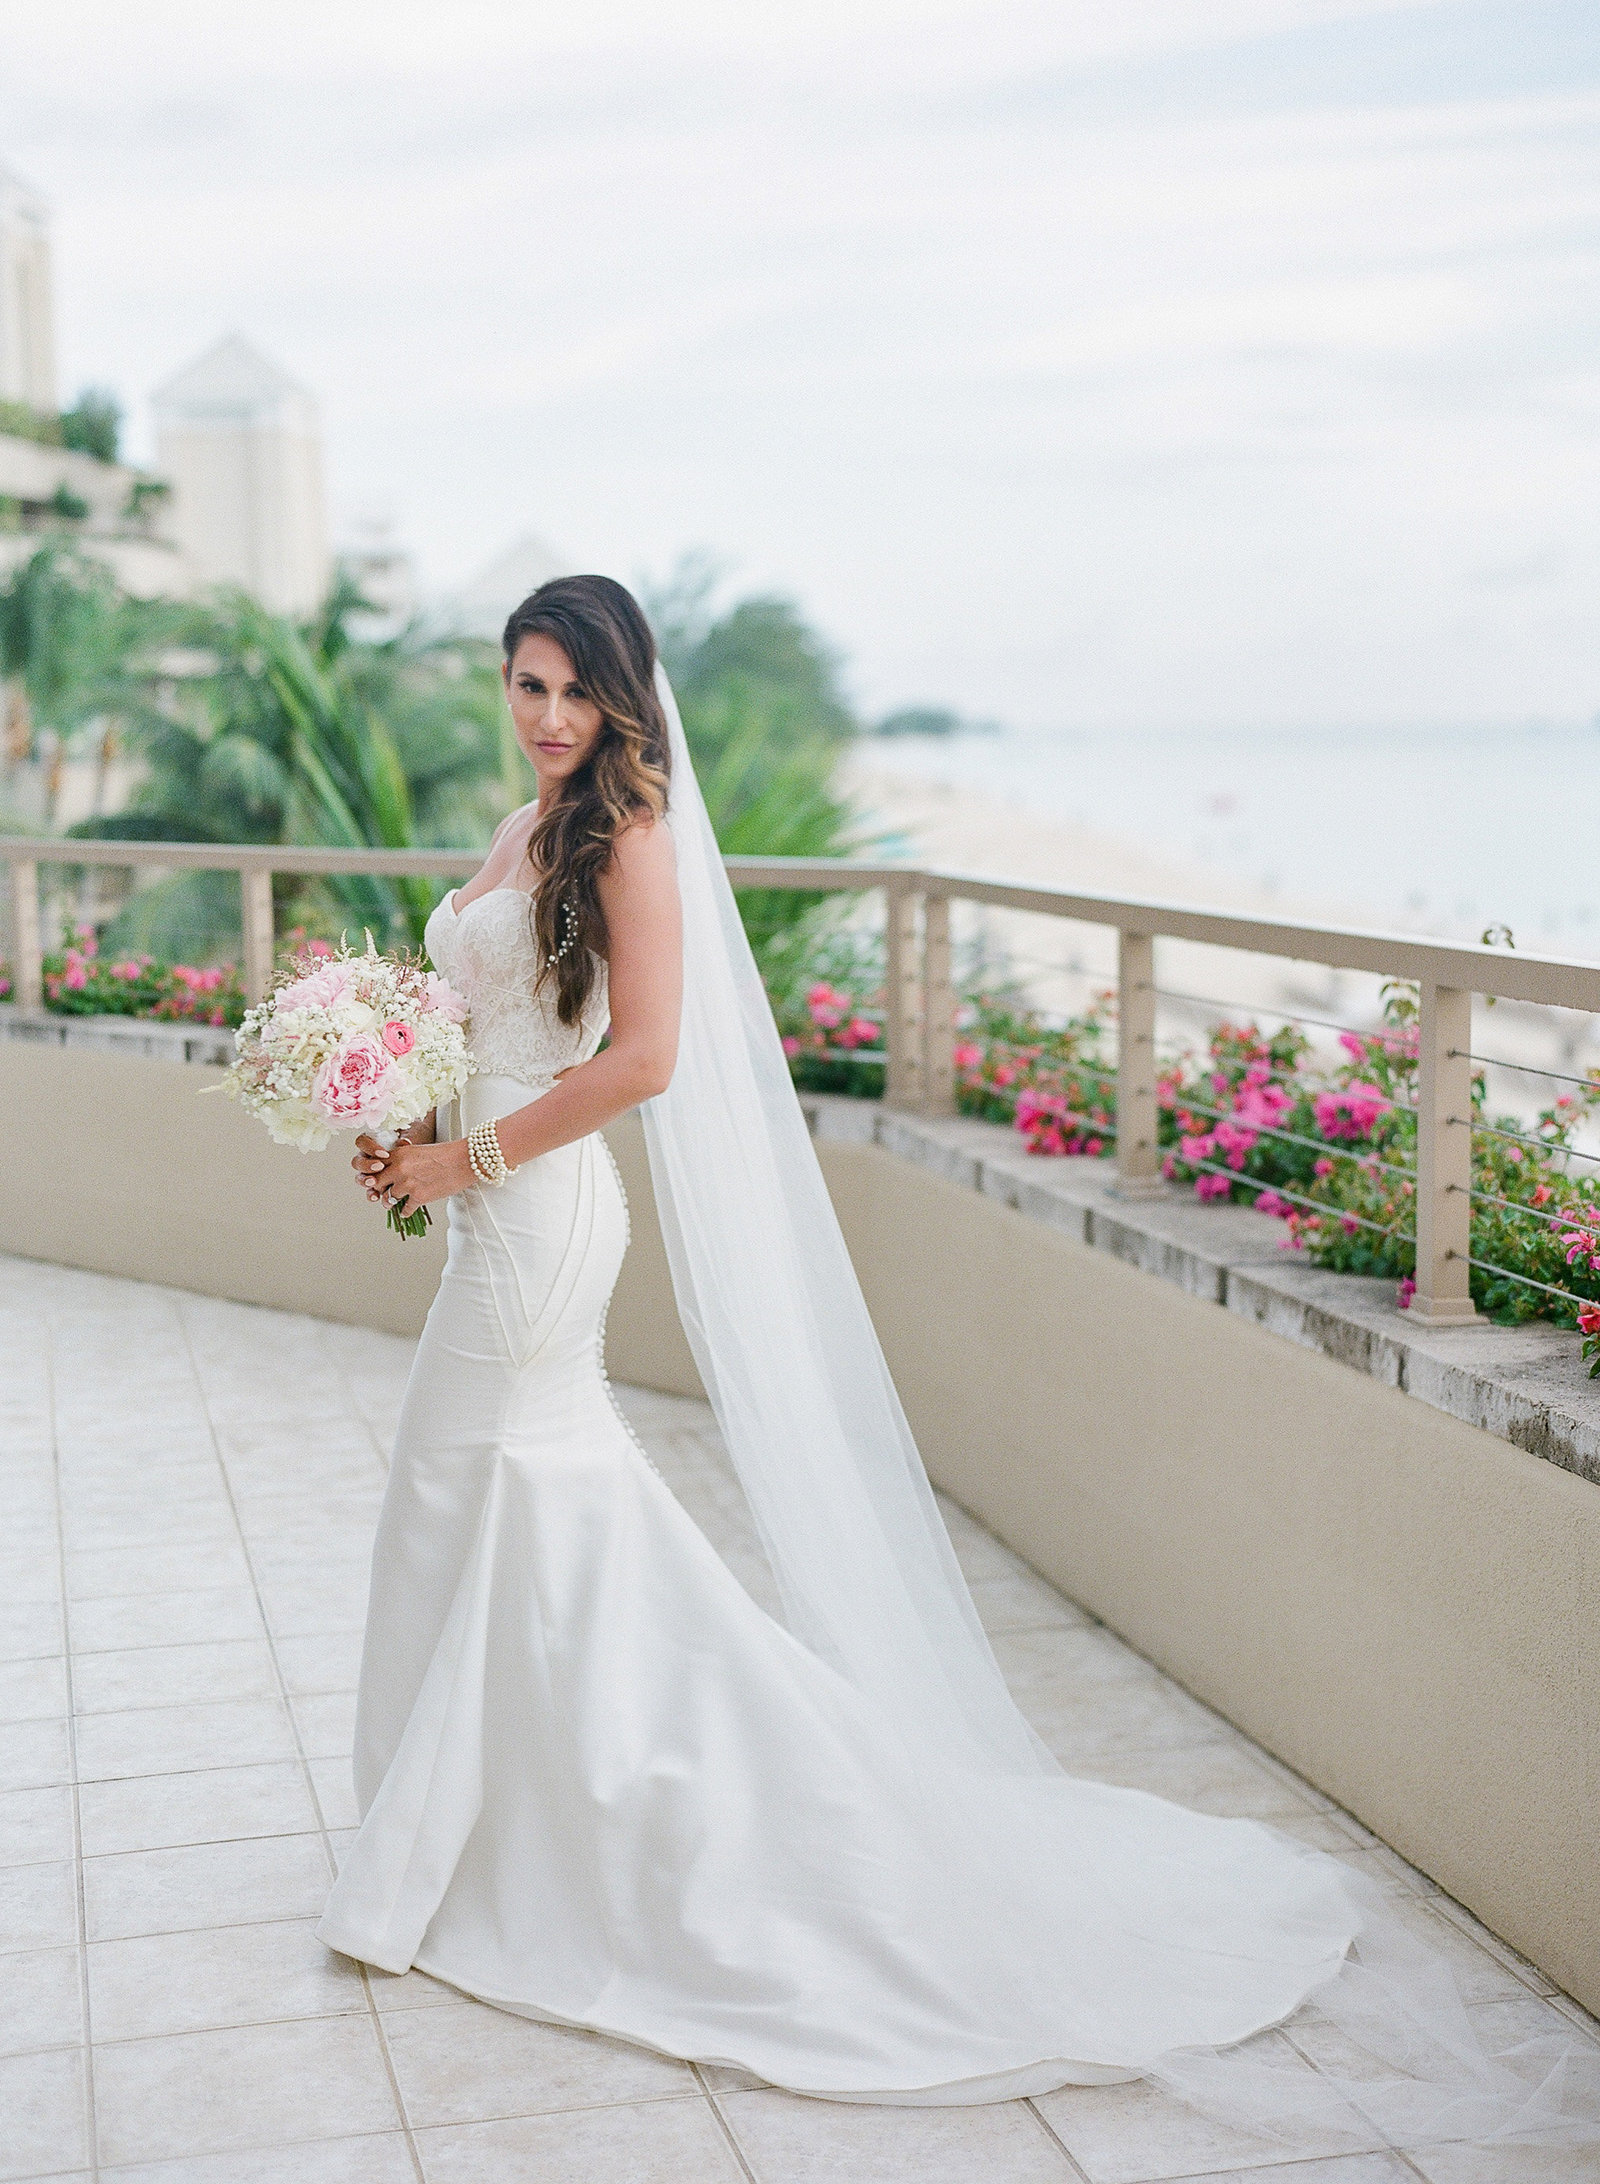 20180810-Pura-Soul-Photo-Ritz-Grand-Cayman-Wedding-17